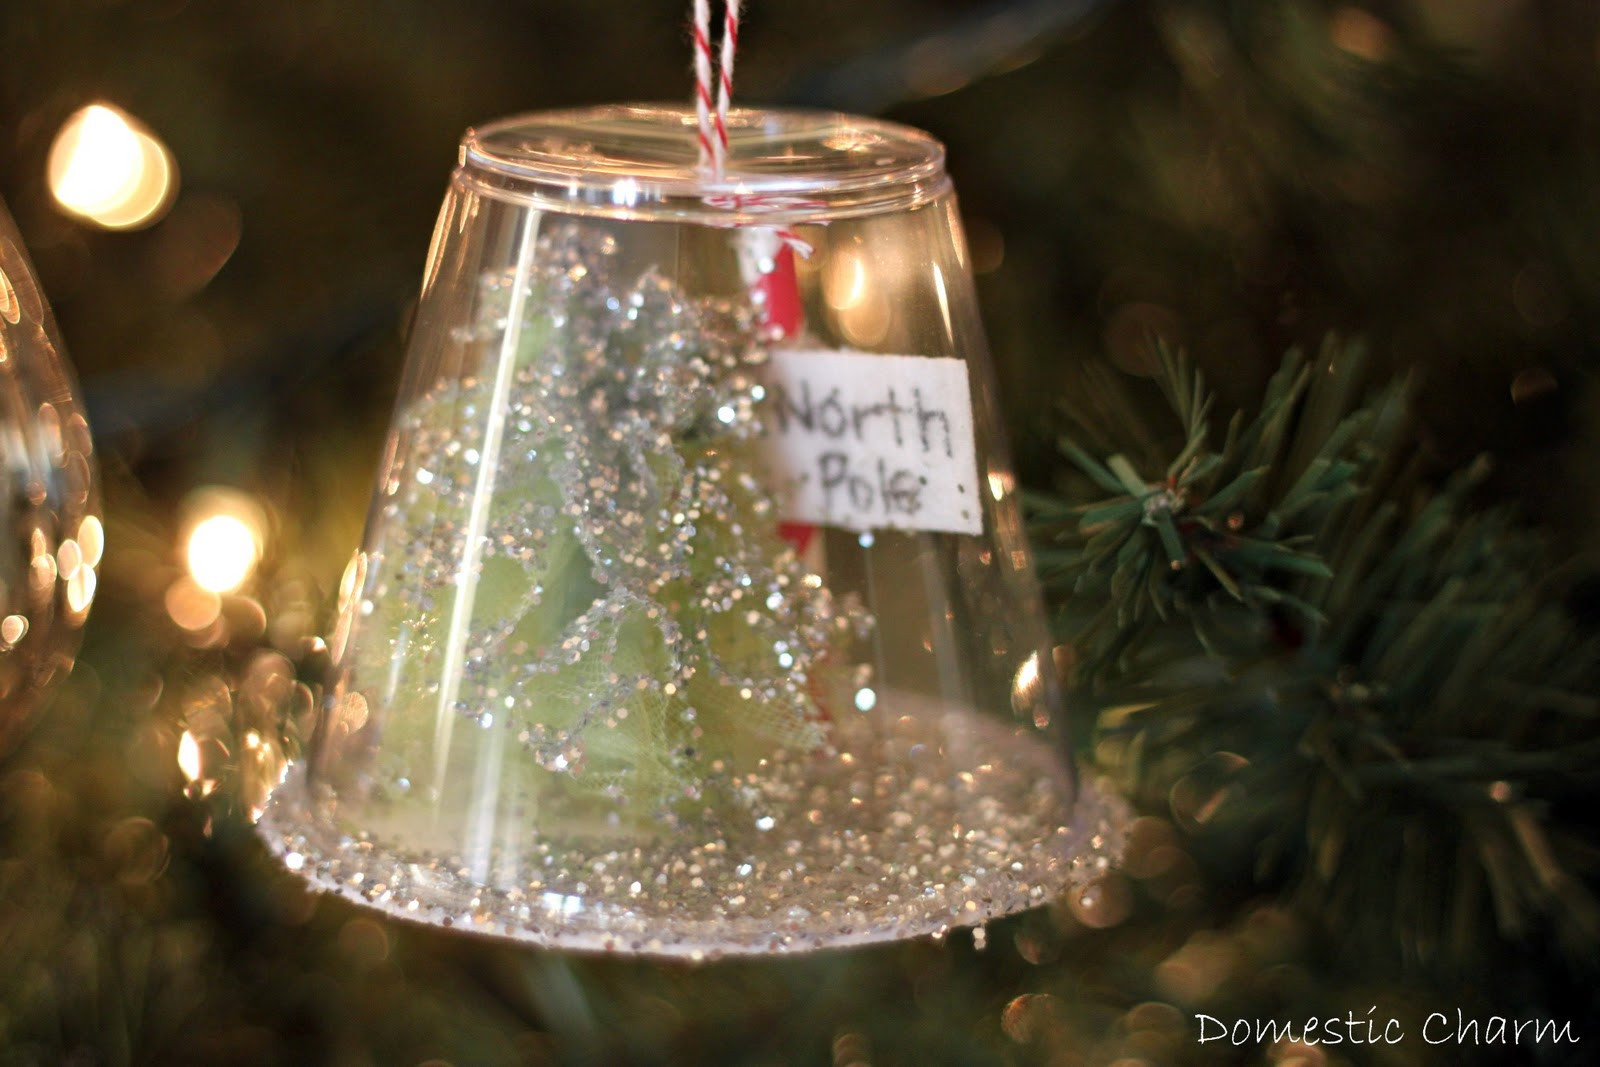 Christmas ornaments to Make Awesome Diy Christmas Tree ornaments to Make with Your Kids Of Delightful 43 Images Christmas ornaments to Make